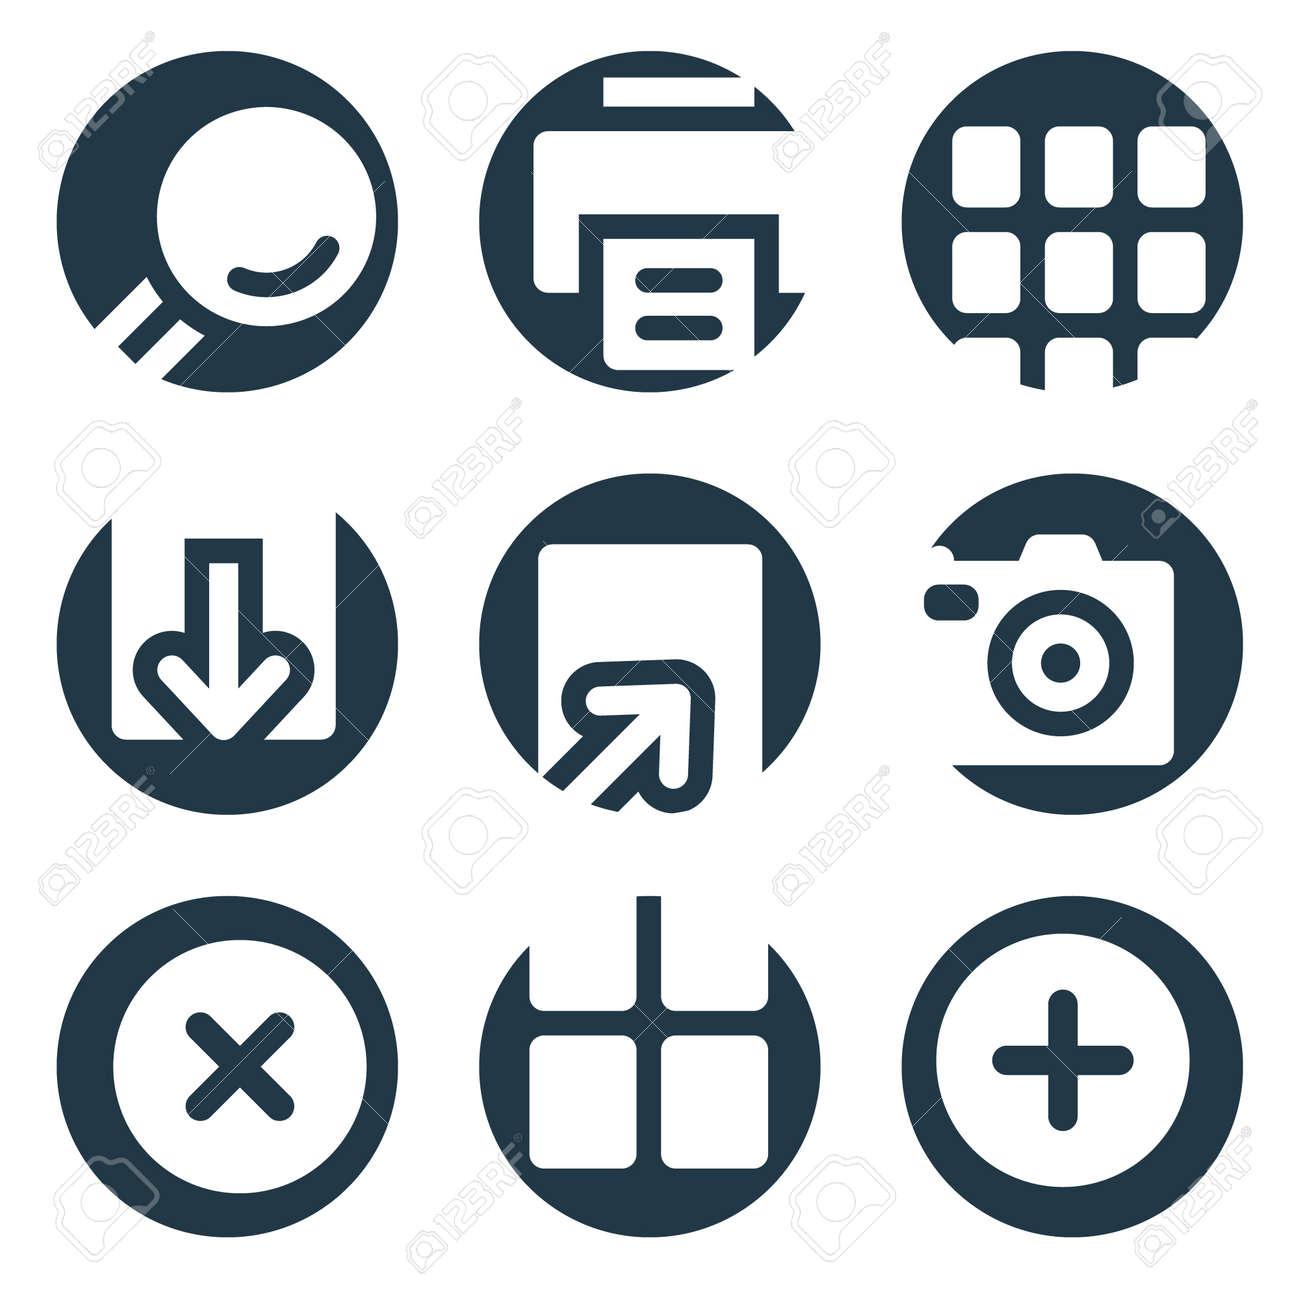 Image viewer web icons, crop series Stock Vector - 8768113